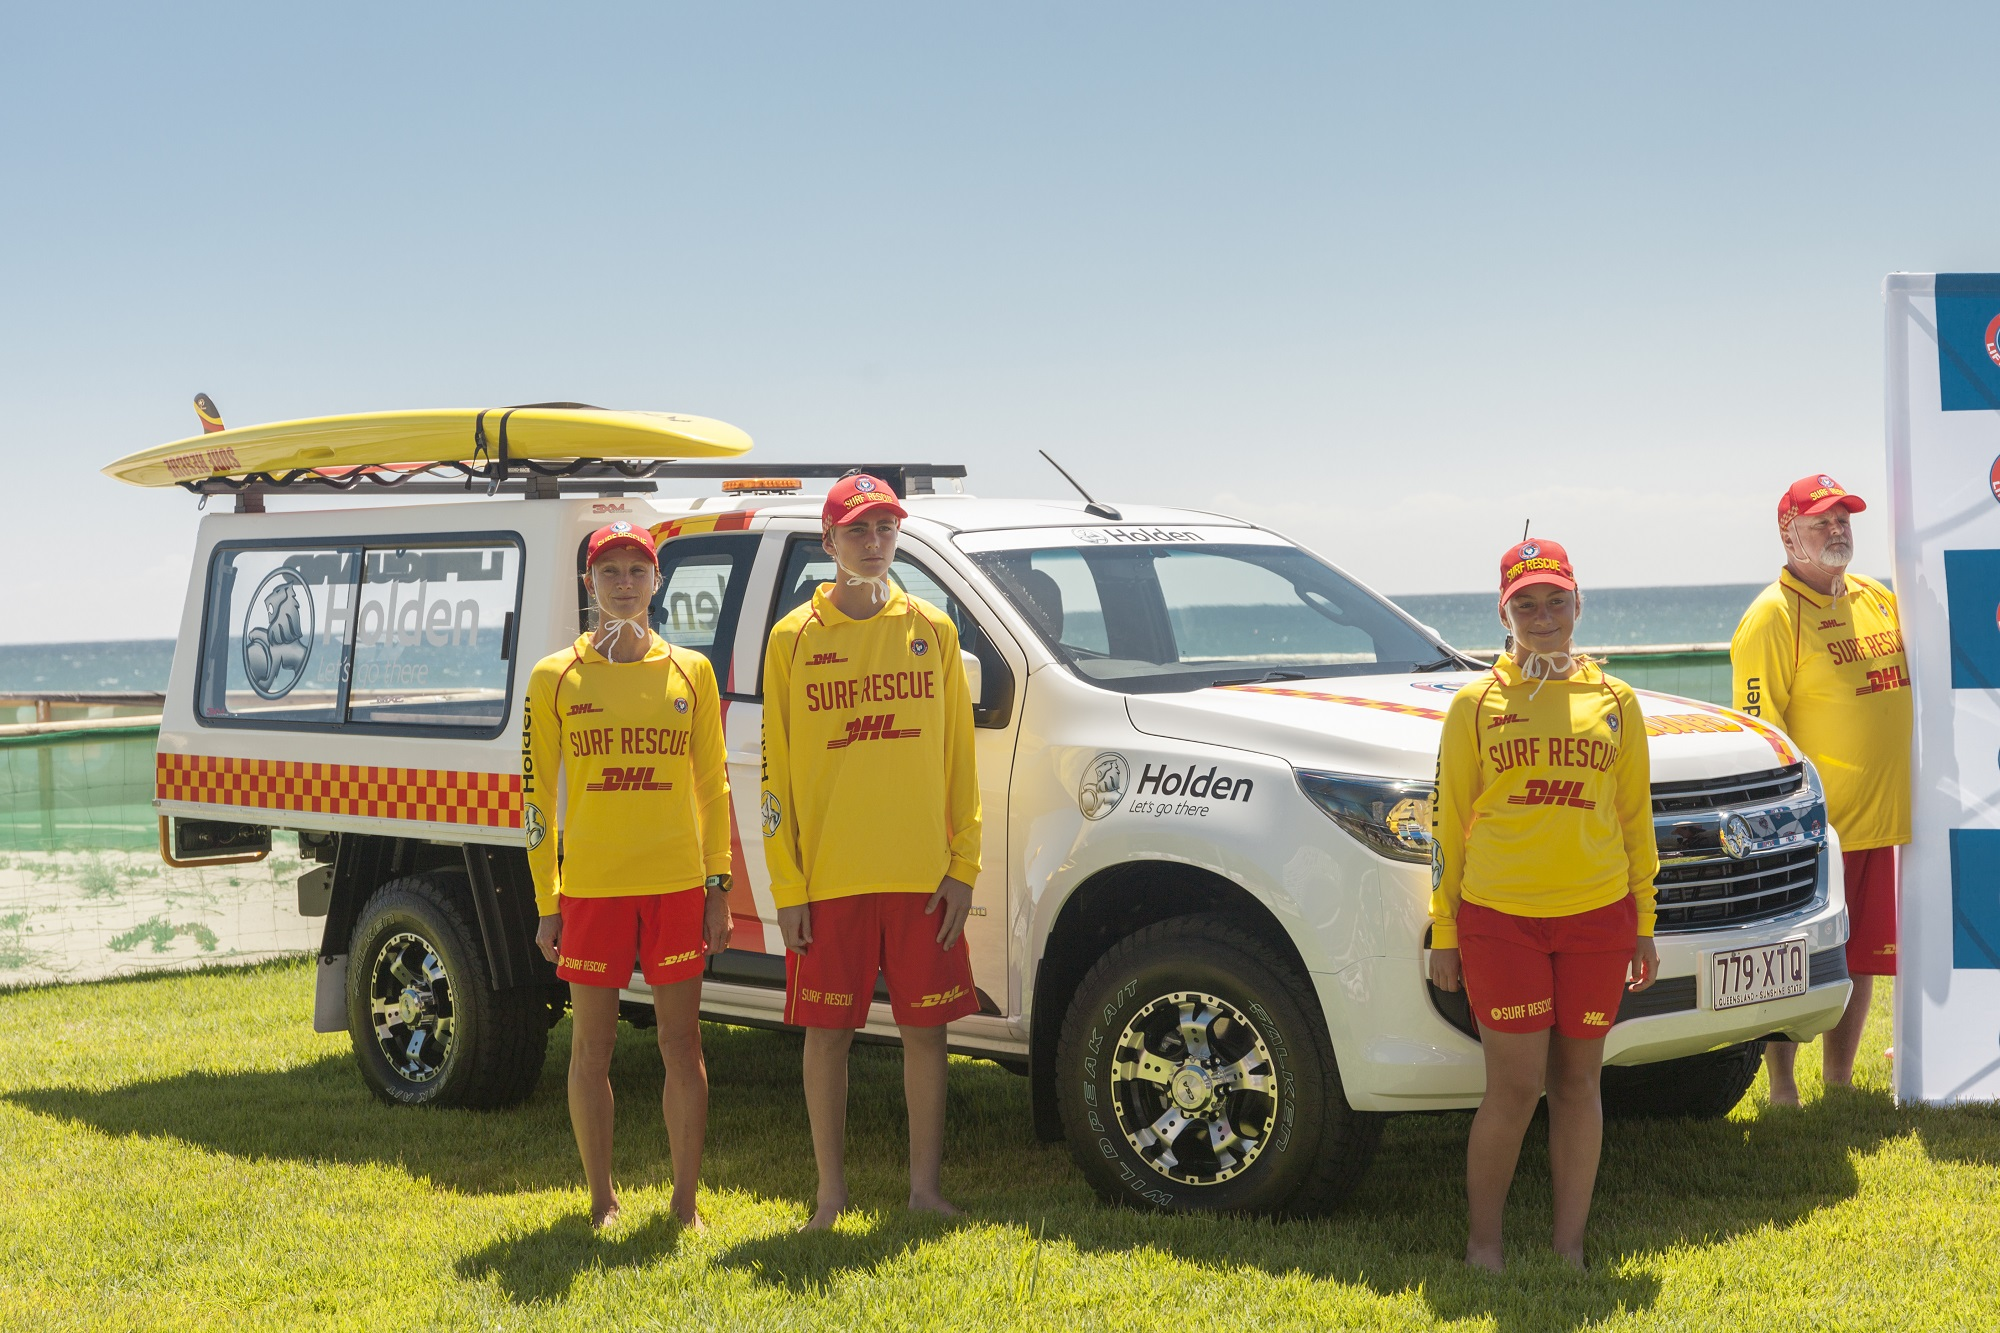 Holden-Surf Life Saving Australia partnership [1]